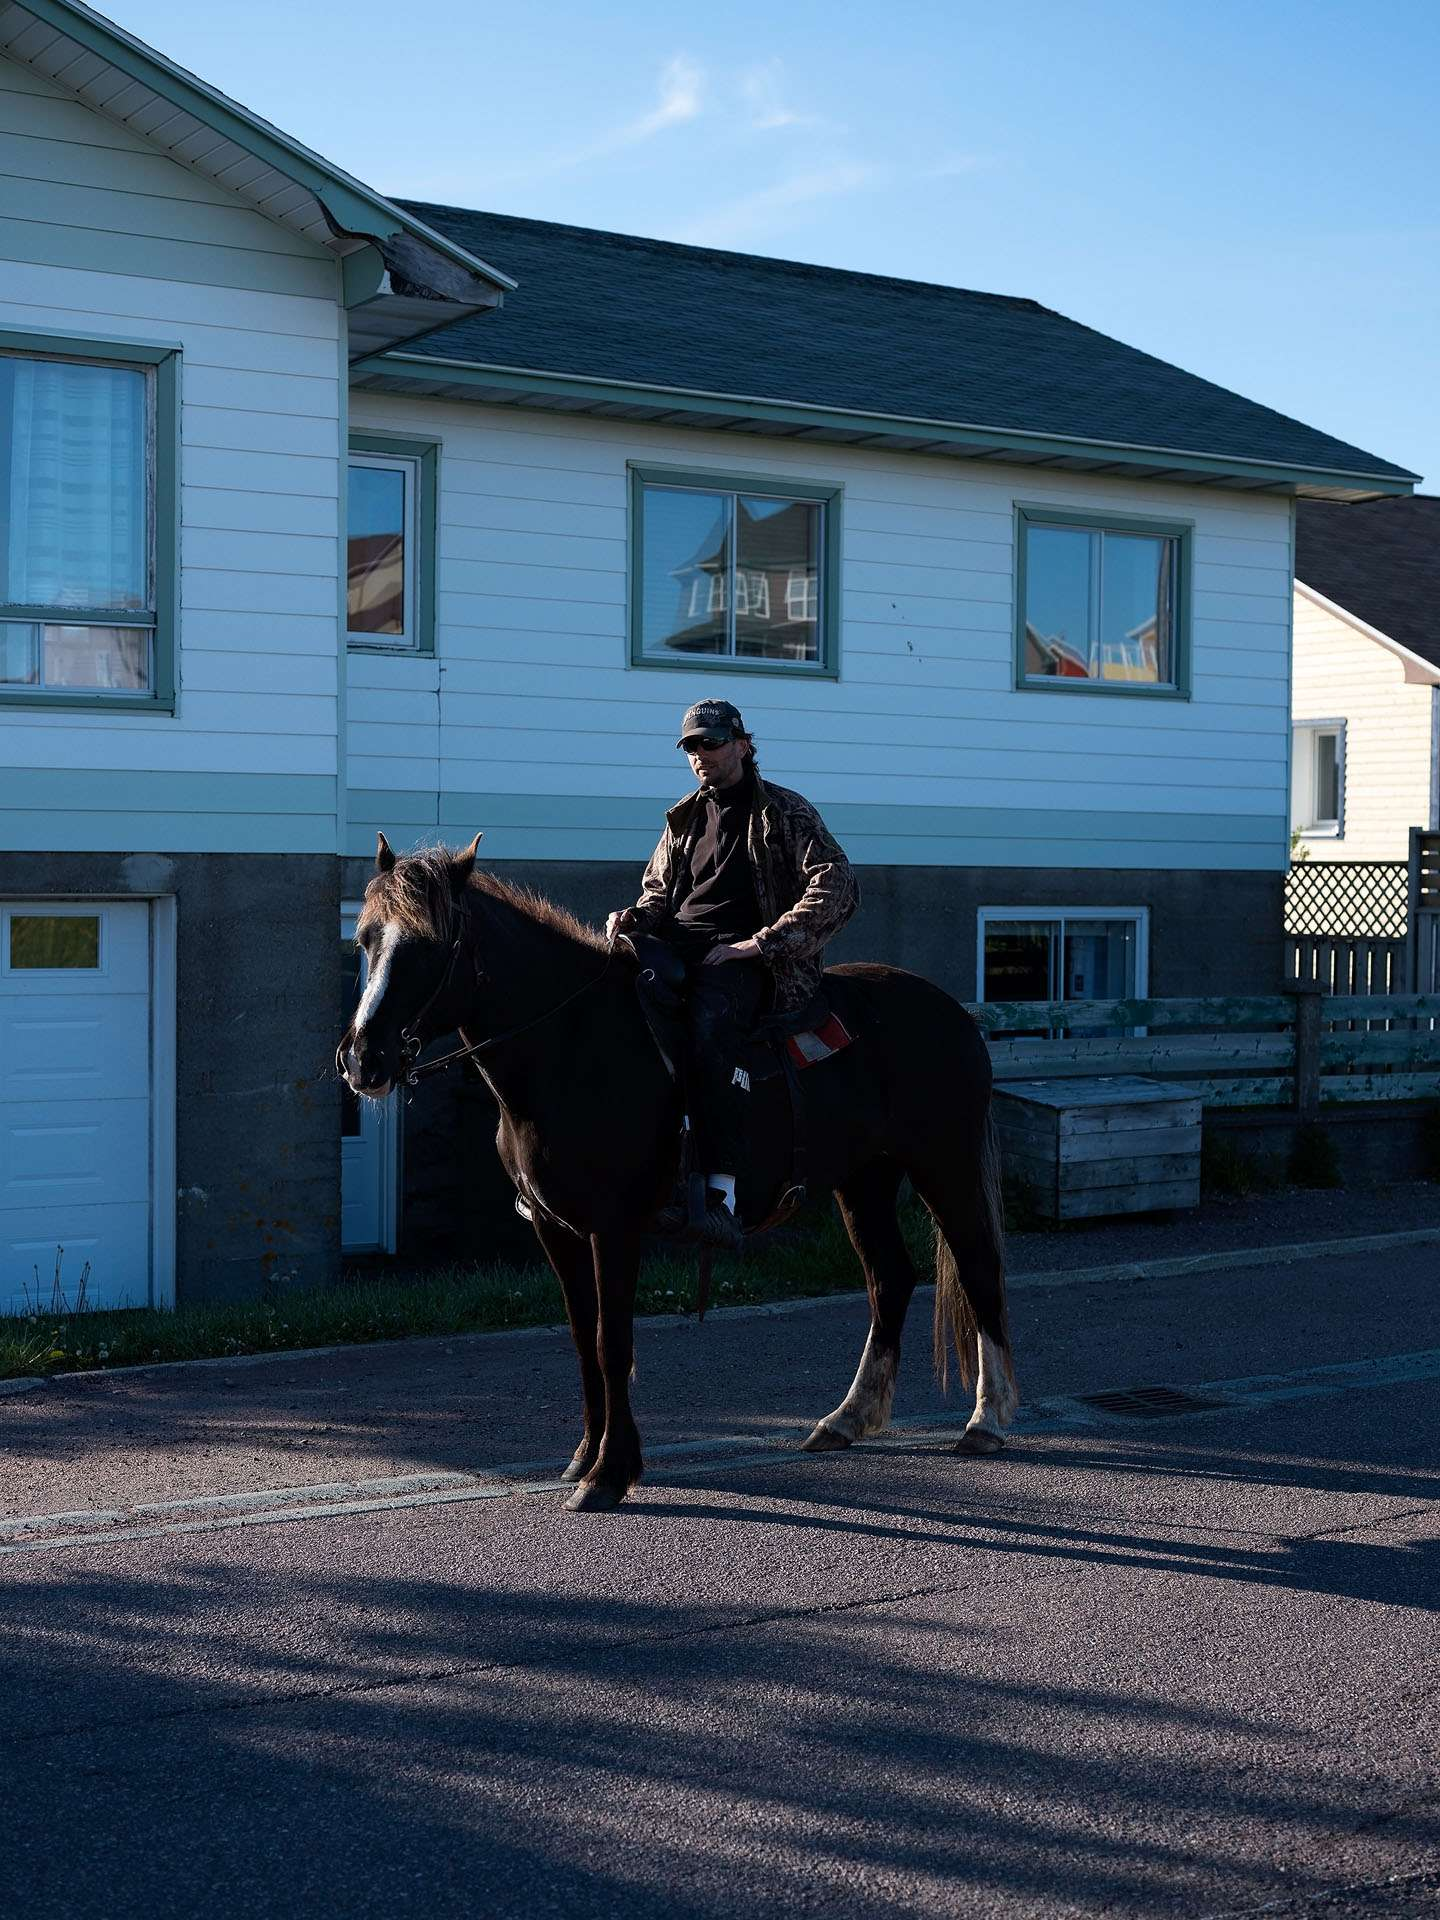 man horseback riding in the street wearing sunglasses by Guillaume Simoneau in Saint-Pierre-et-Miquelon for M le mag Le Monde